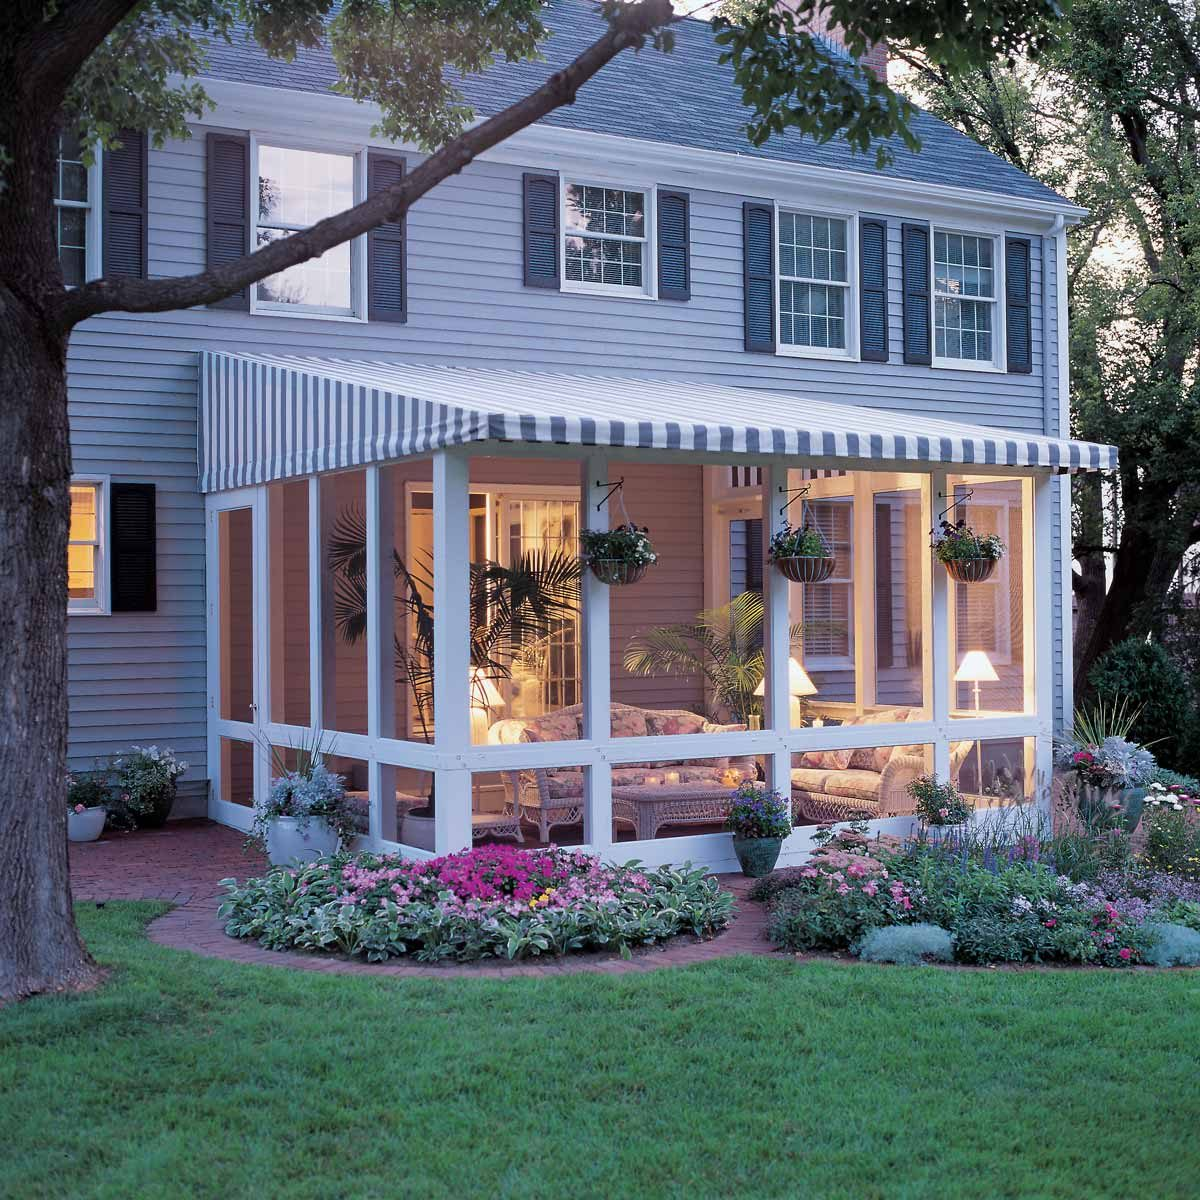 Screened Porch And Garage Oasis: 14 Ways To Add Space To Your Home That Won't Break The